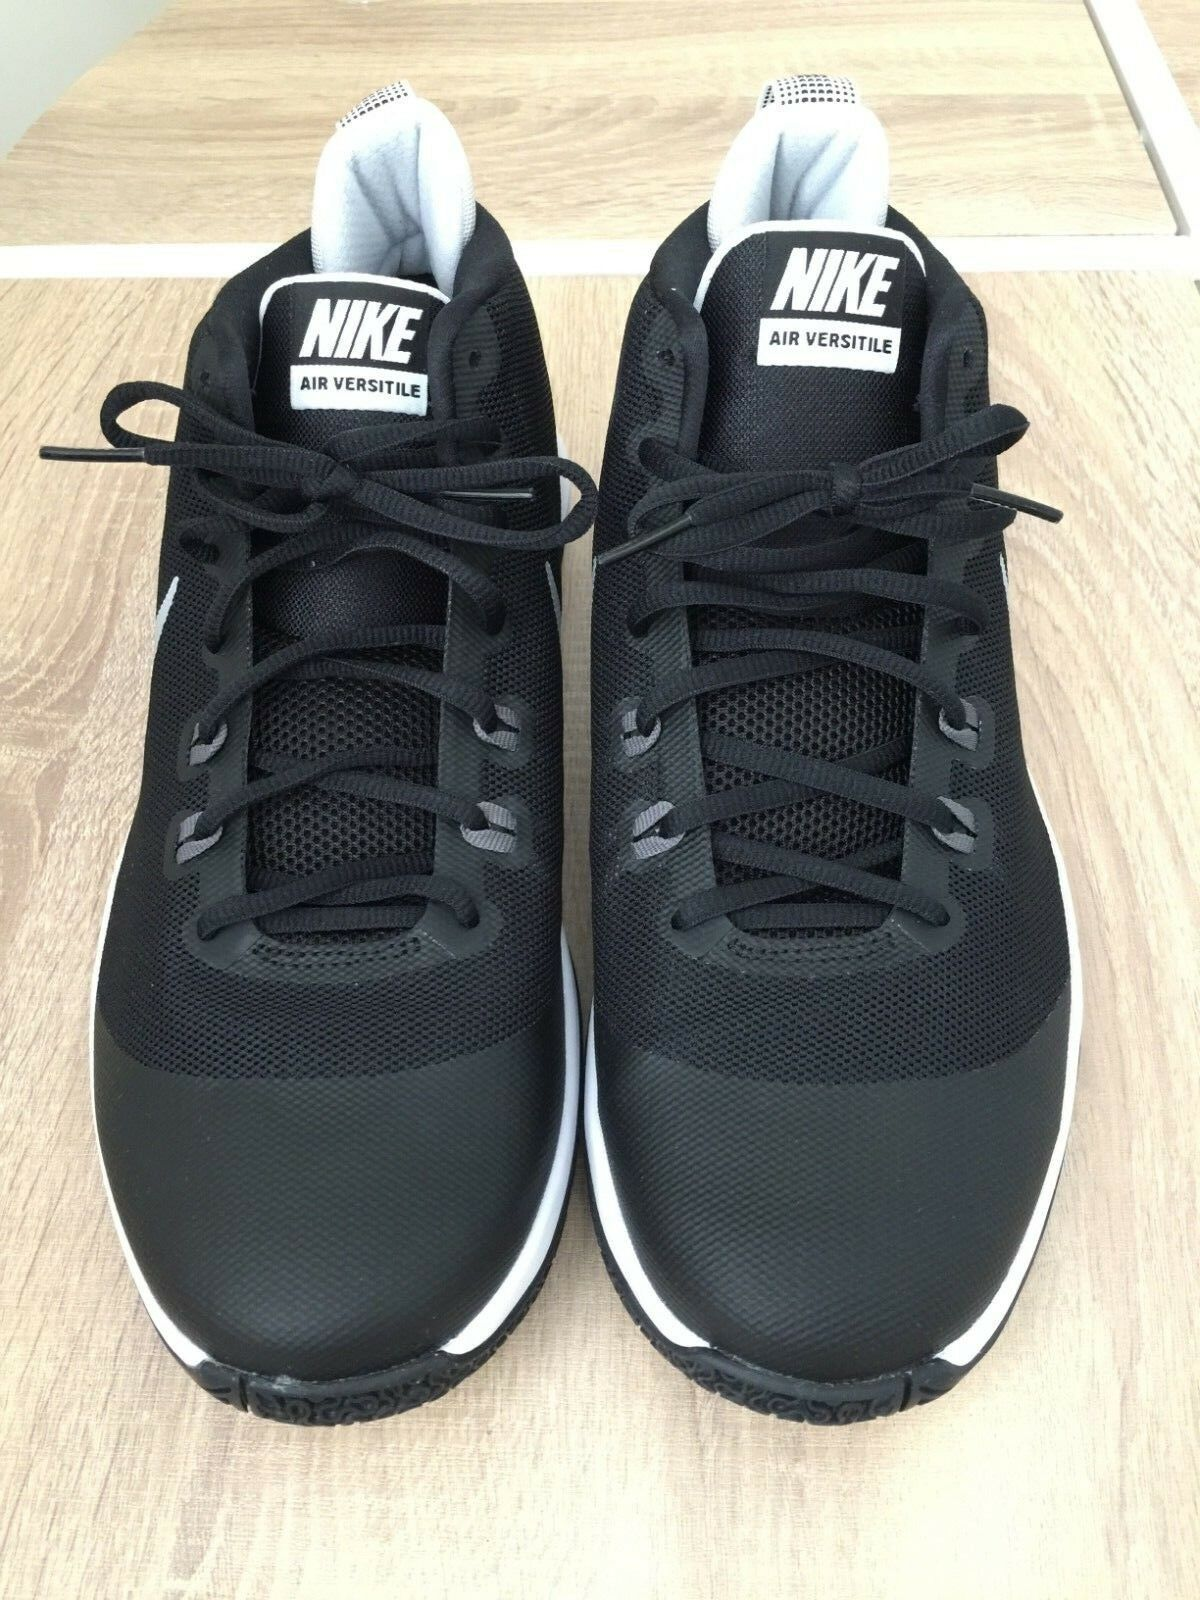 Nike Air Versitile Sneakers Black Metallic Silver color Size 11.5